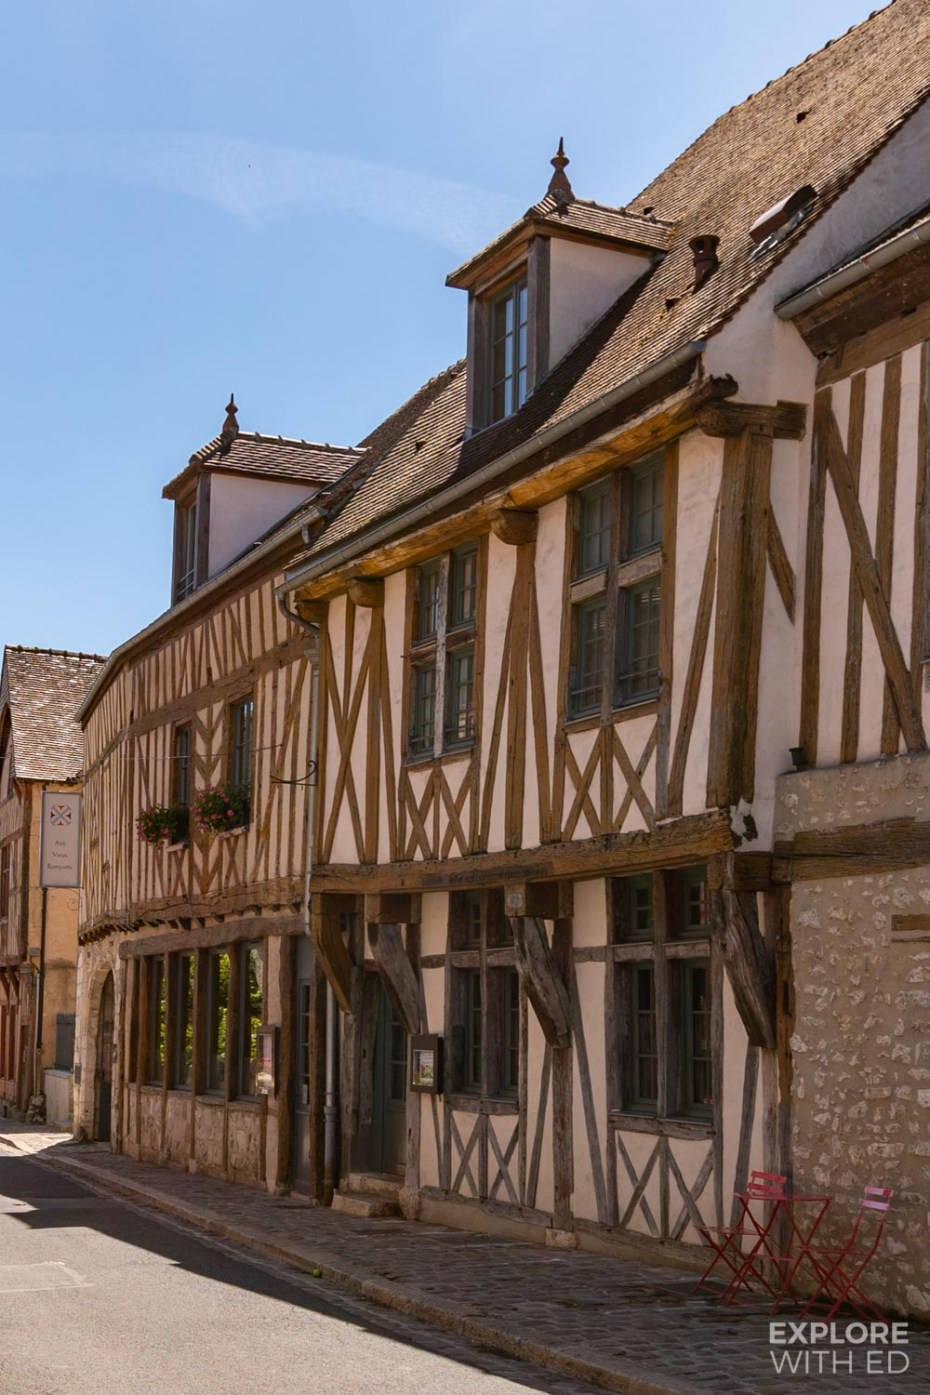 Characterful half timbered buildings in Provins, France